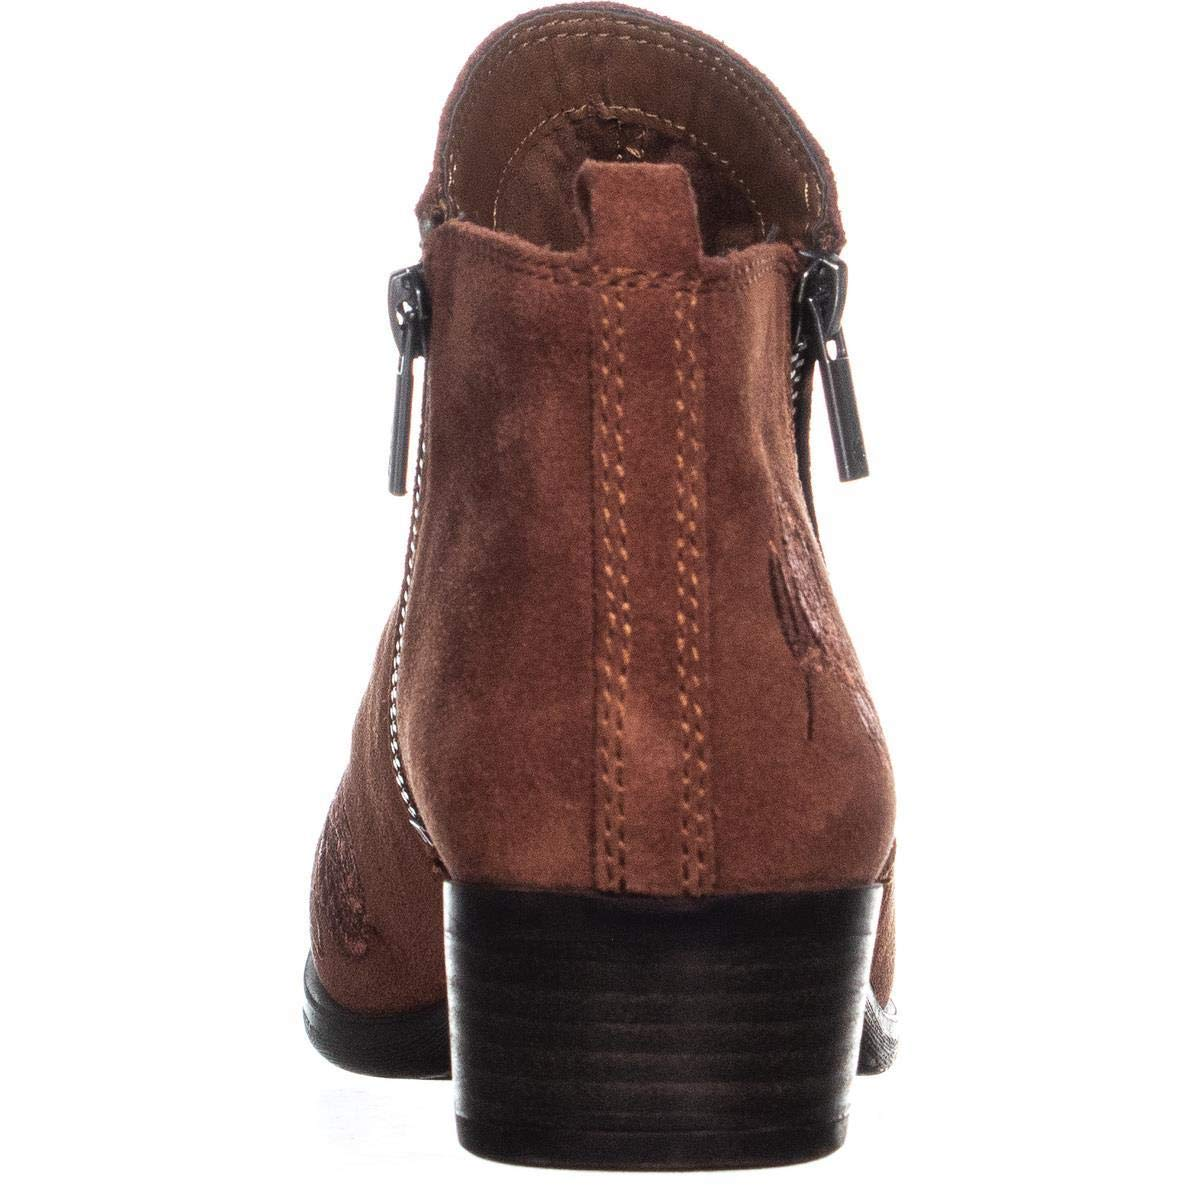 fd8315289090 Lucky Brand Womens Basel 5 Closed Toe Ankle Fashion Boots  Amazon.co.uk   Shoes   Bags